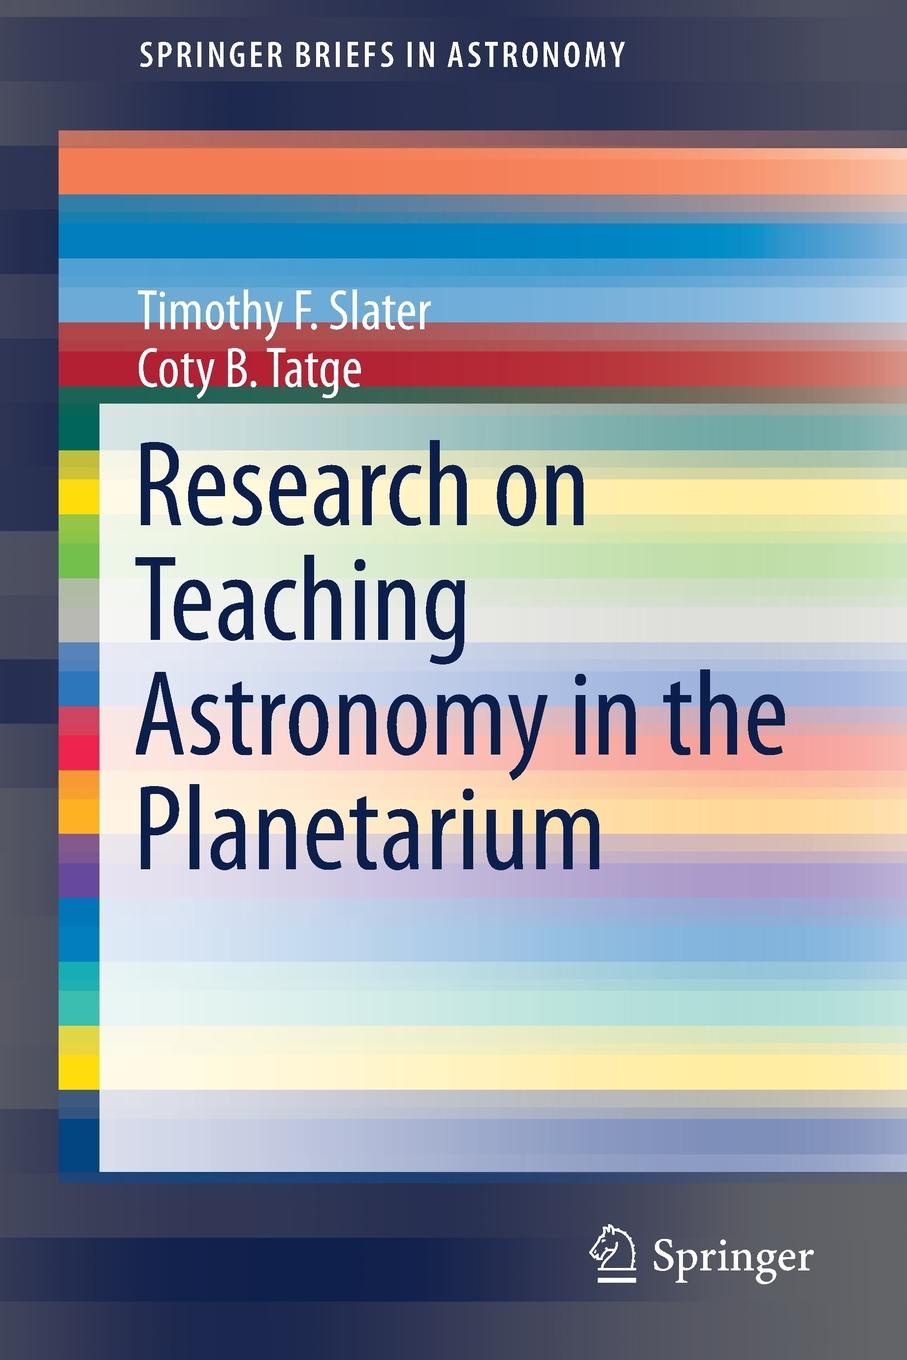 Timothy F. Slater, Coty B. Tatge Research on Teaching Astronomy in the Planetarium